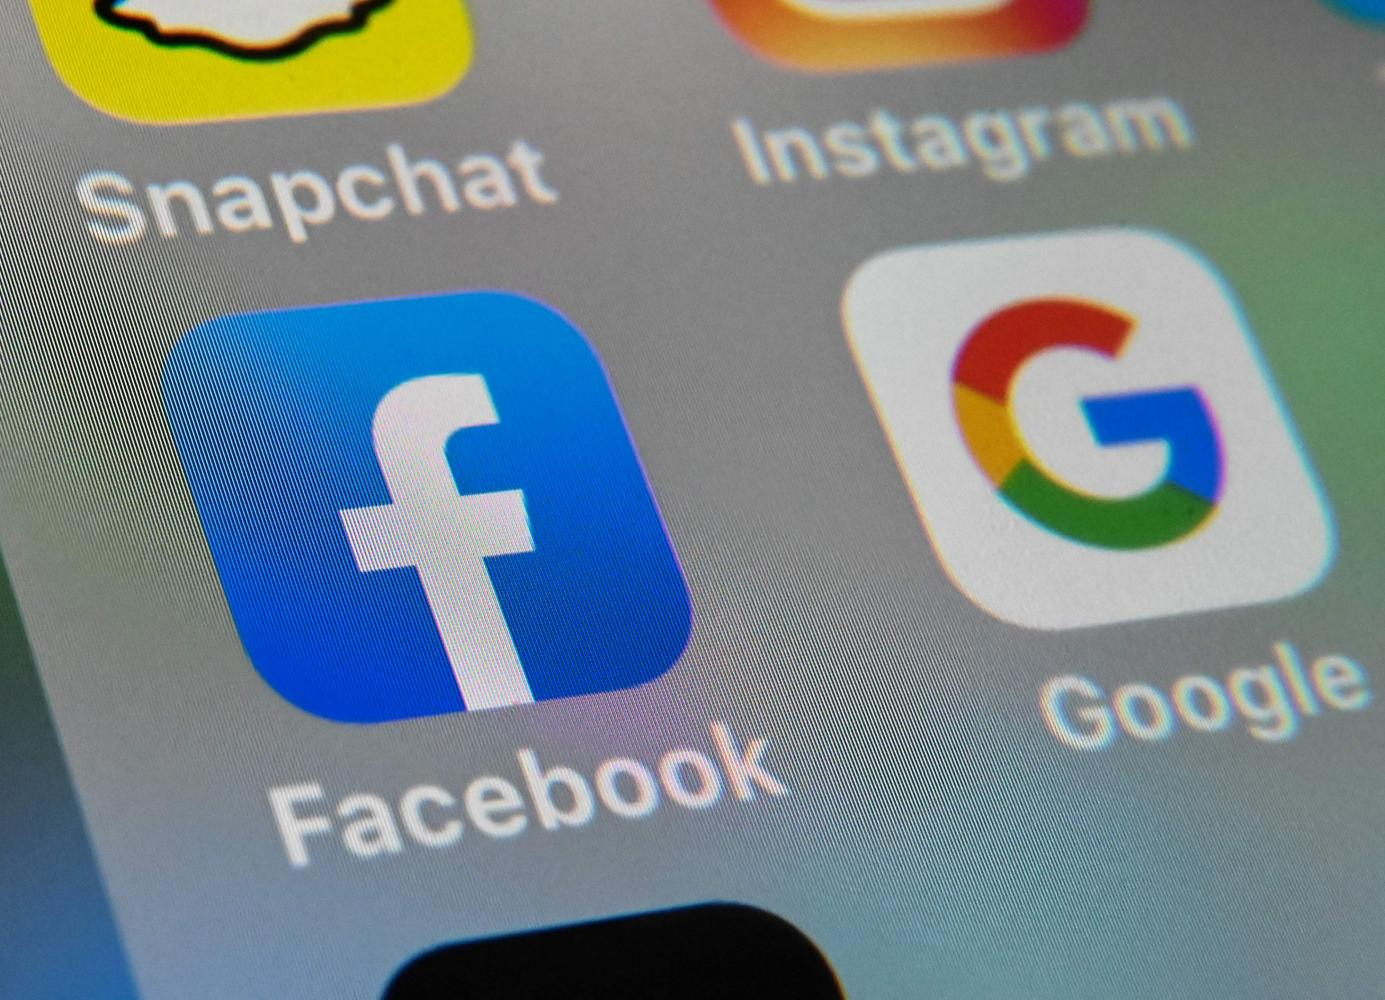 Australia proposed new rules that will allow media companies to seek payment from Google and Facebook for articles posted on their platforms.